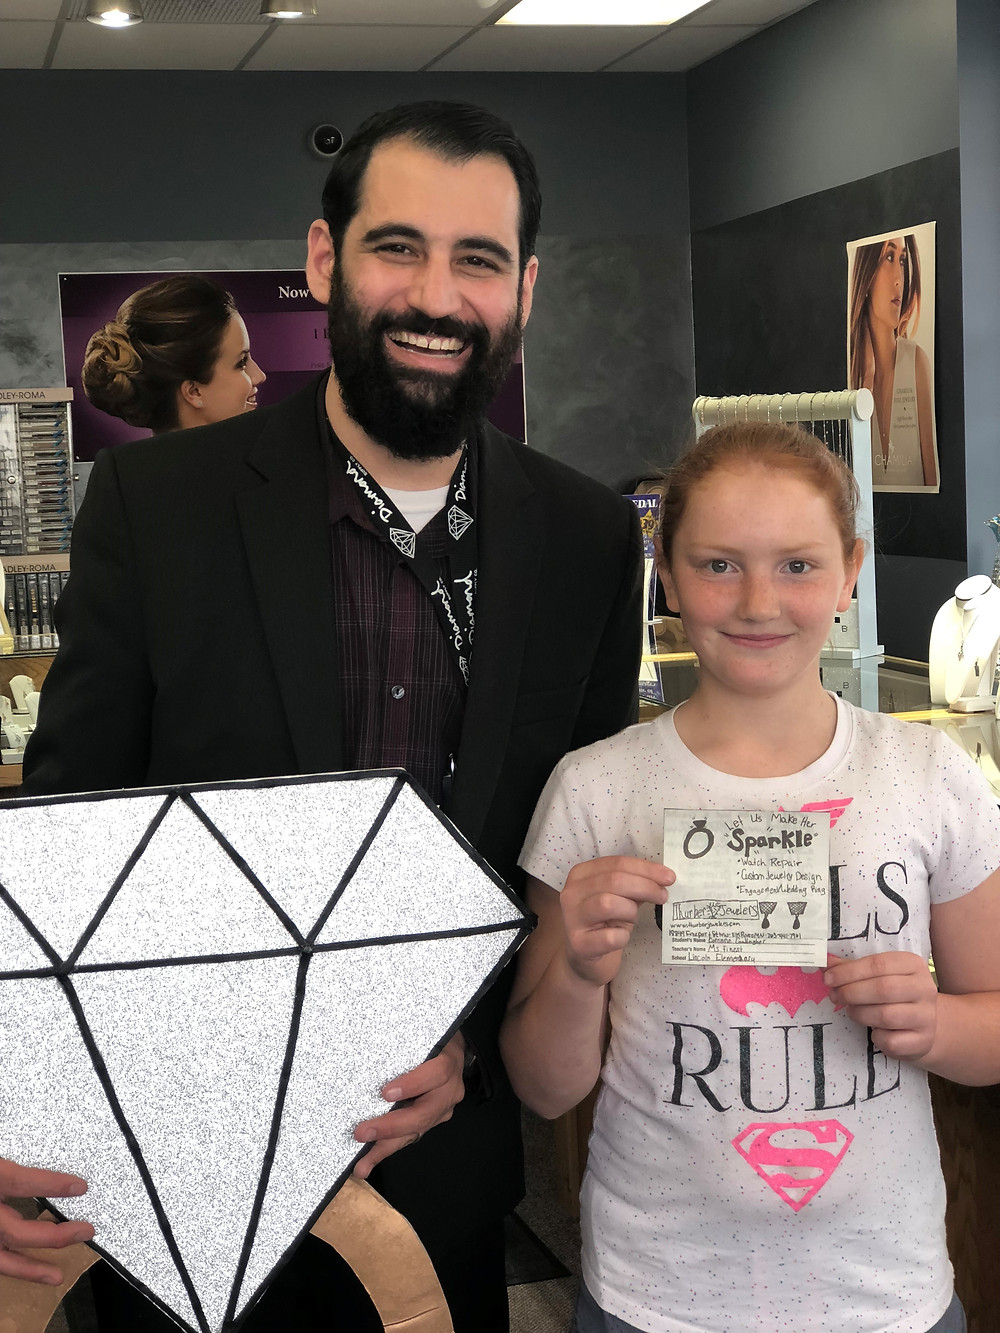 Evan Silbert and Corinne holding Thurber Jewelers advertisement from local newspaper. Thurber Jewelers community contribution. Charitable donations.